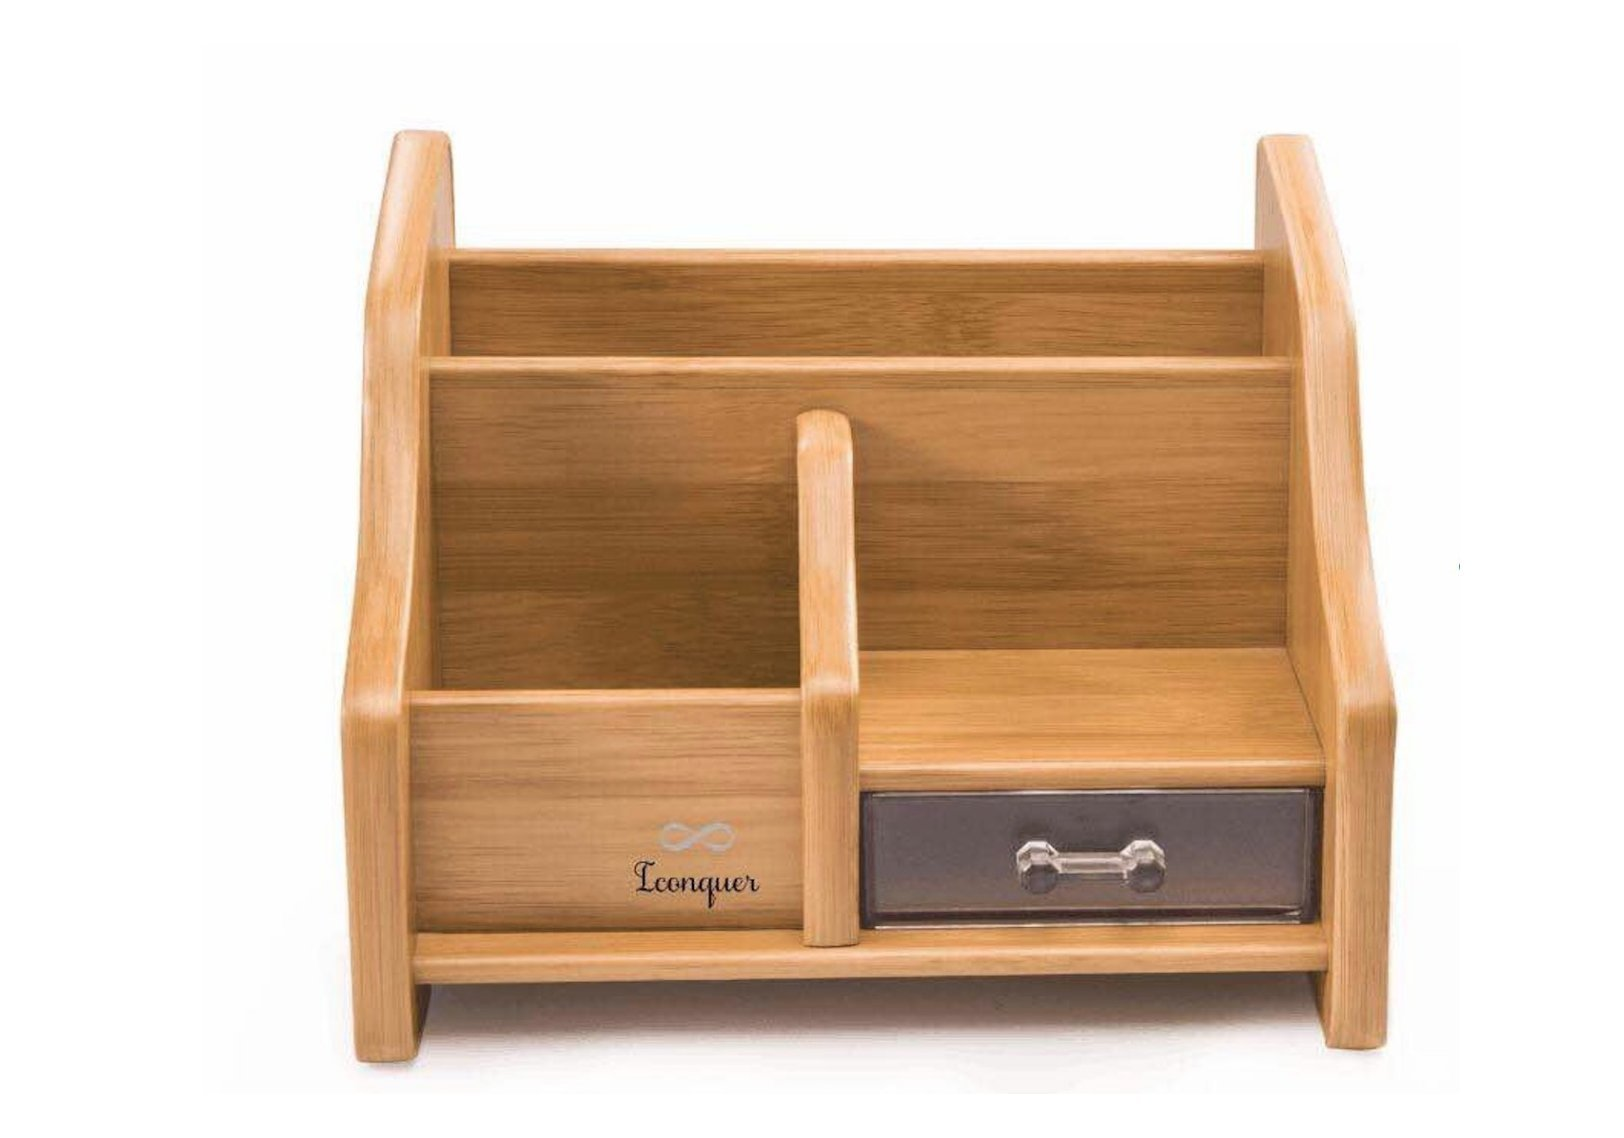 Bamboo Wood Desk Organizer – Premium Quality Workspace Organizer – 3 Compartments and 1 Acrylic Drawer – Elegant, Minimalist Design – Practical and Sturdy – Fits All Decors